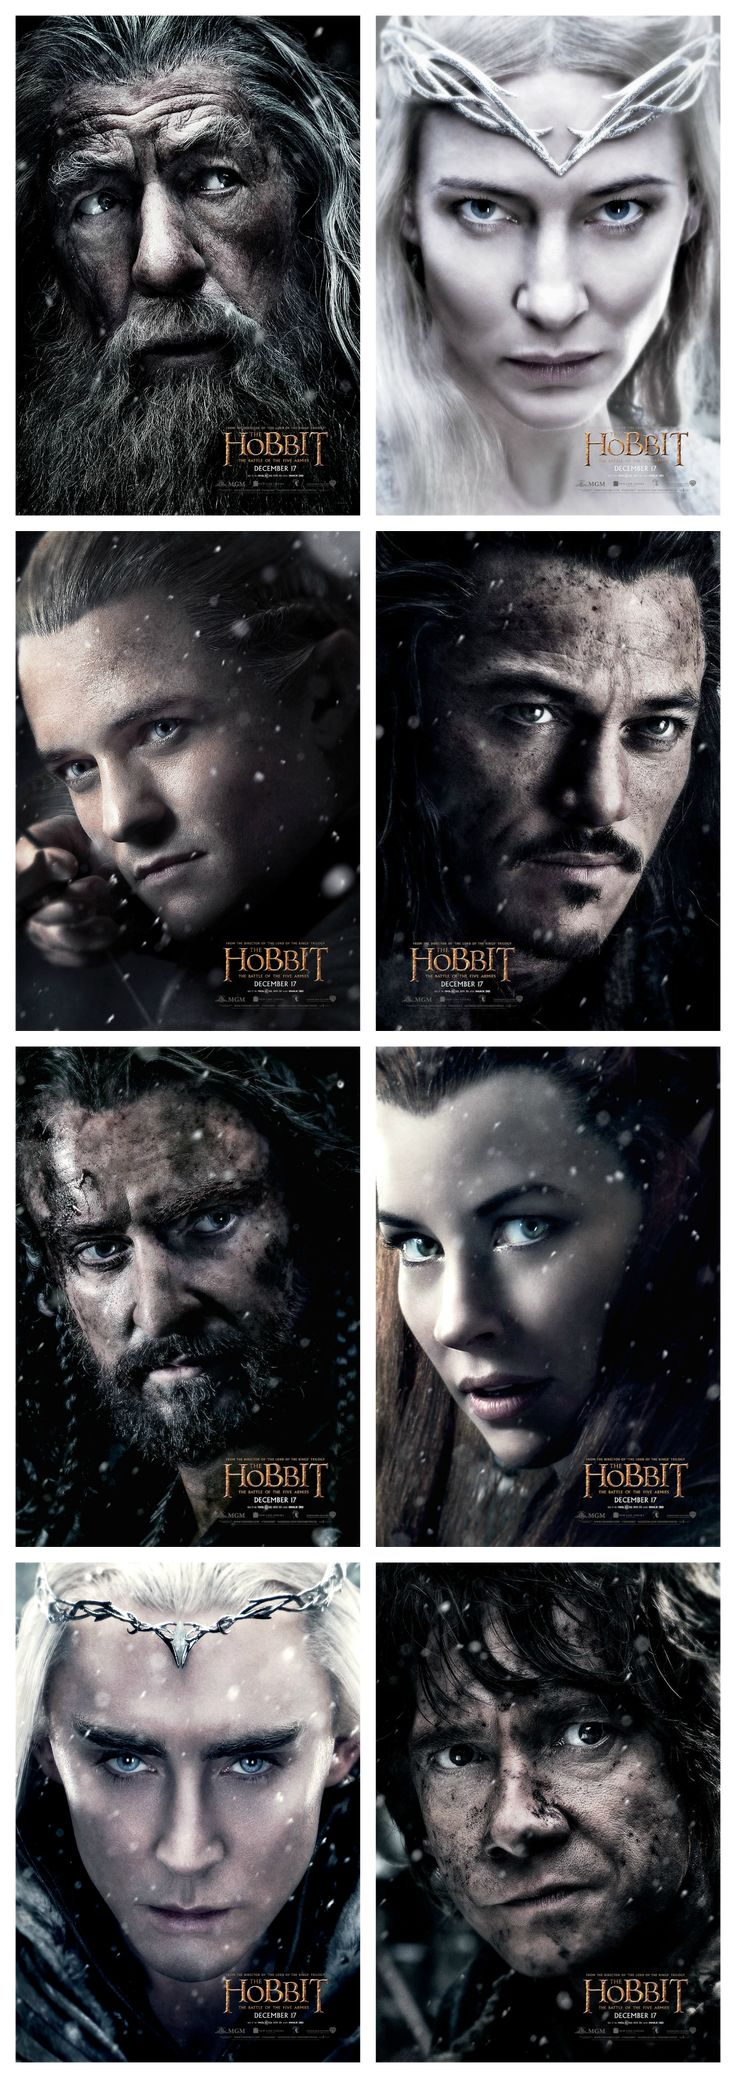 The complete set of The Hobbit: the Battle of the Five Armies character posters. ^_^  Can't Wait!!!!